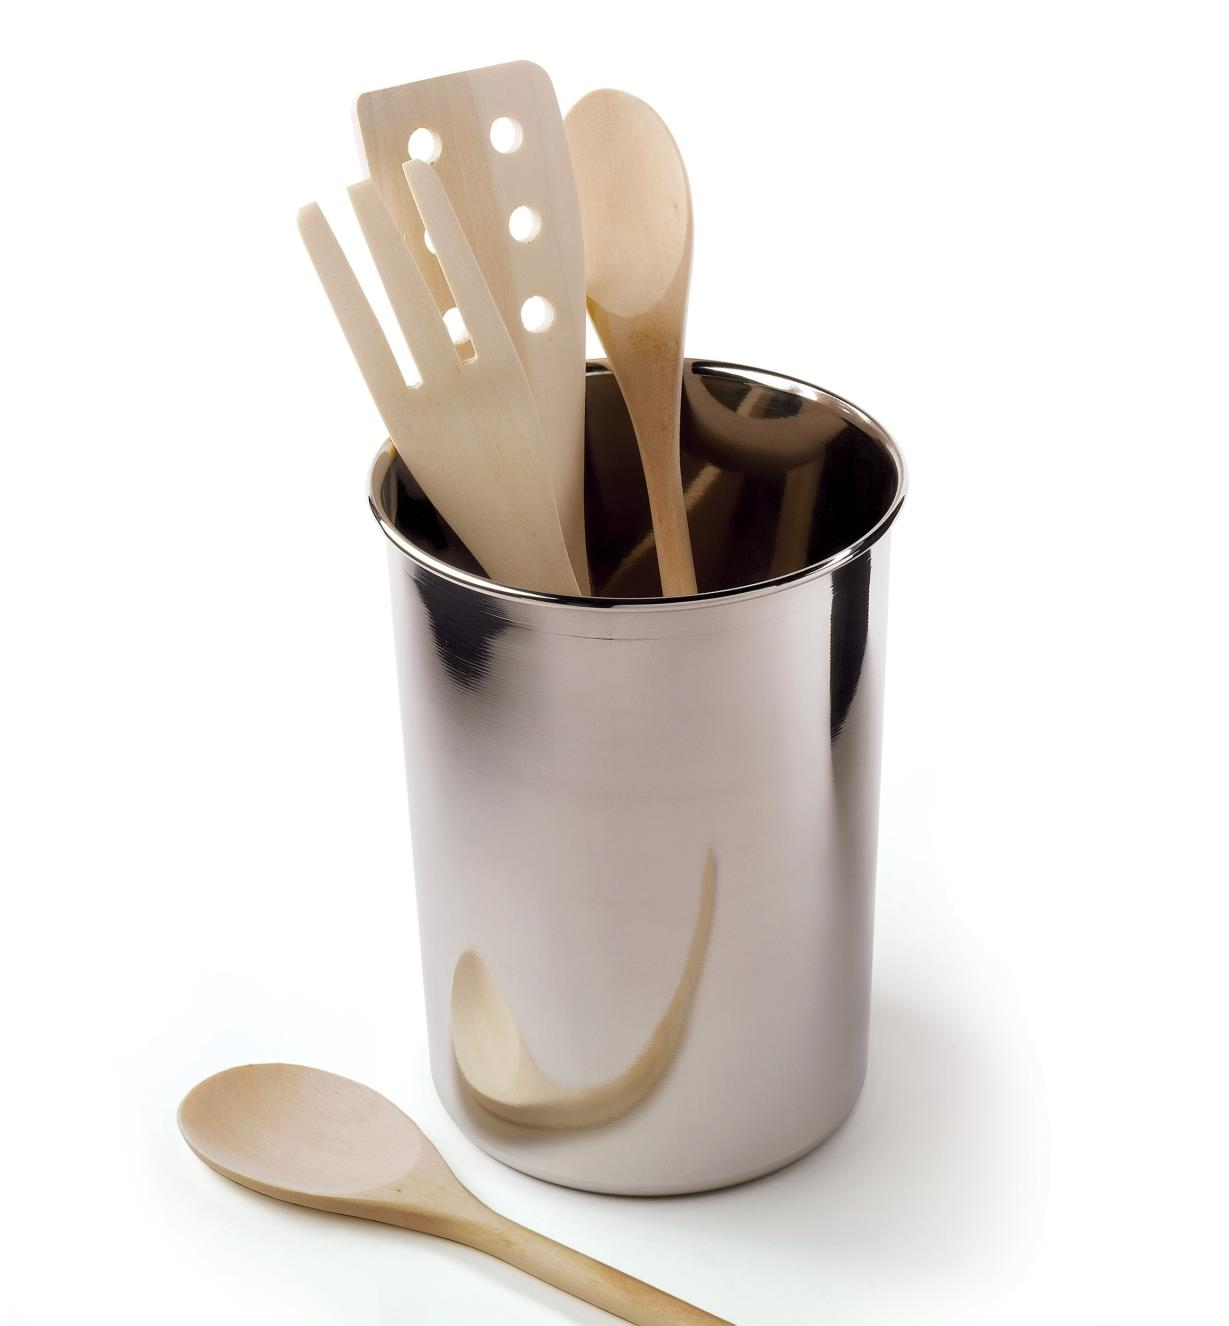 Stainless-Steel canister holding wooden utensils